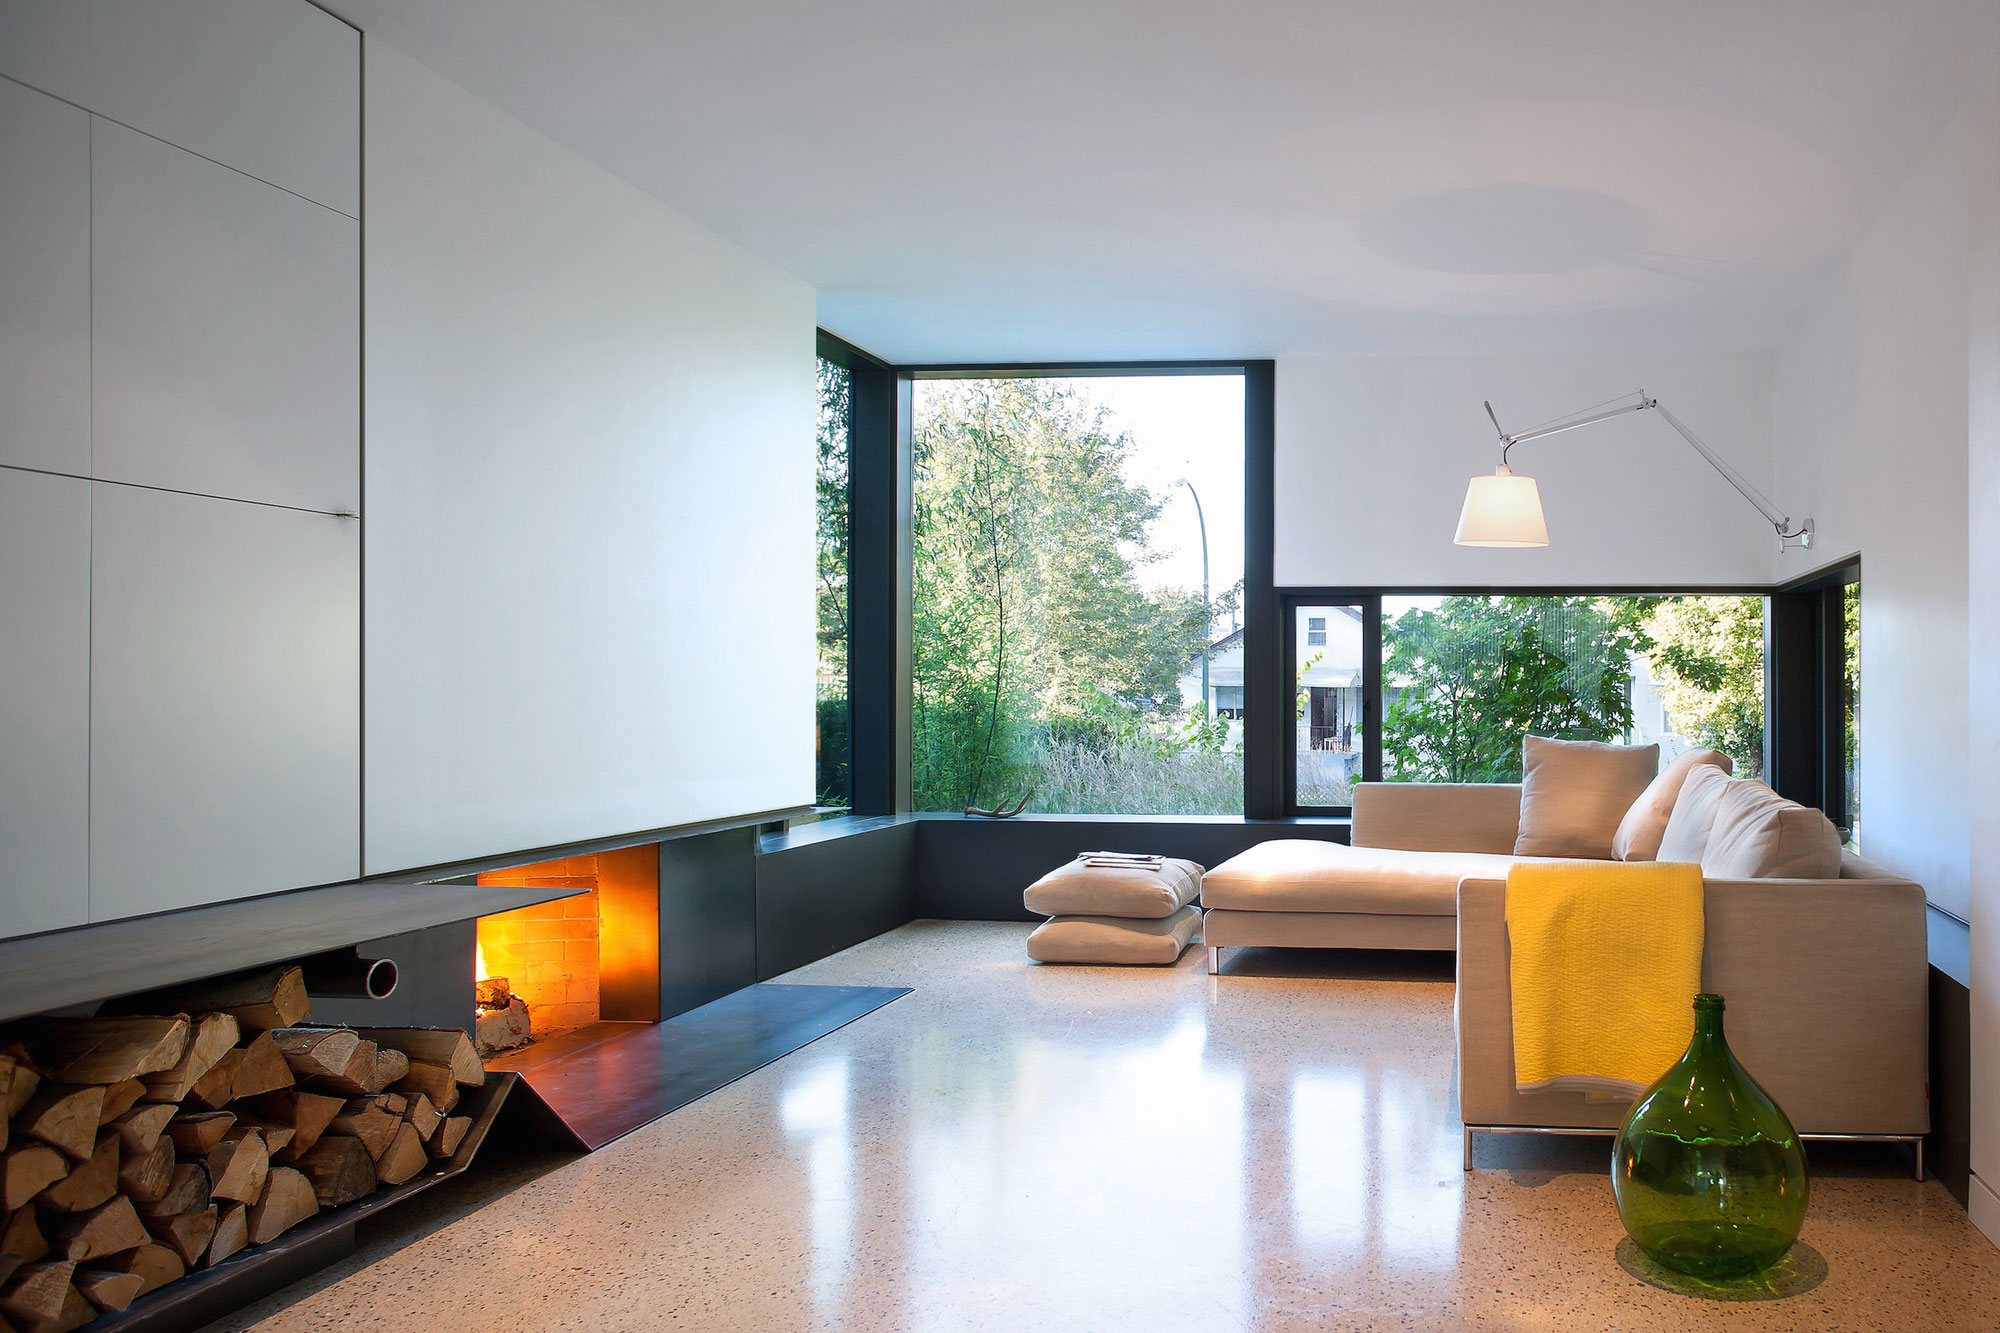 430 House by D'Arcy Jones Architects